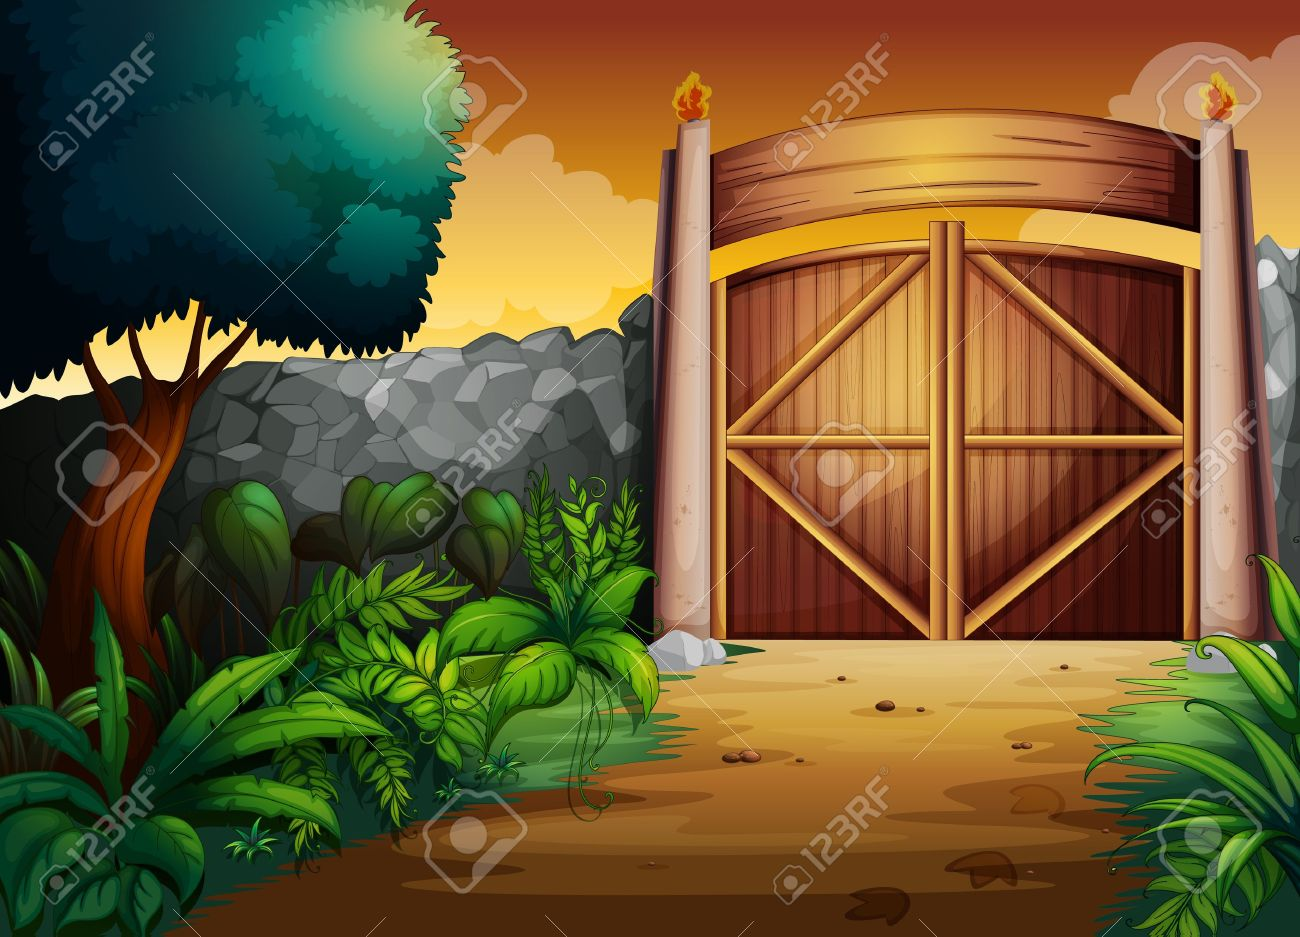 8,906 Entrance Gate Stock Vector Illustration And Royalty Free.